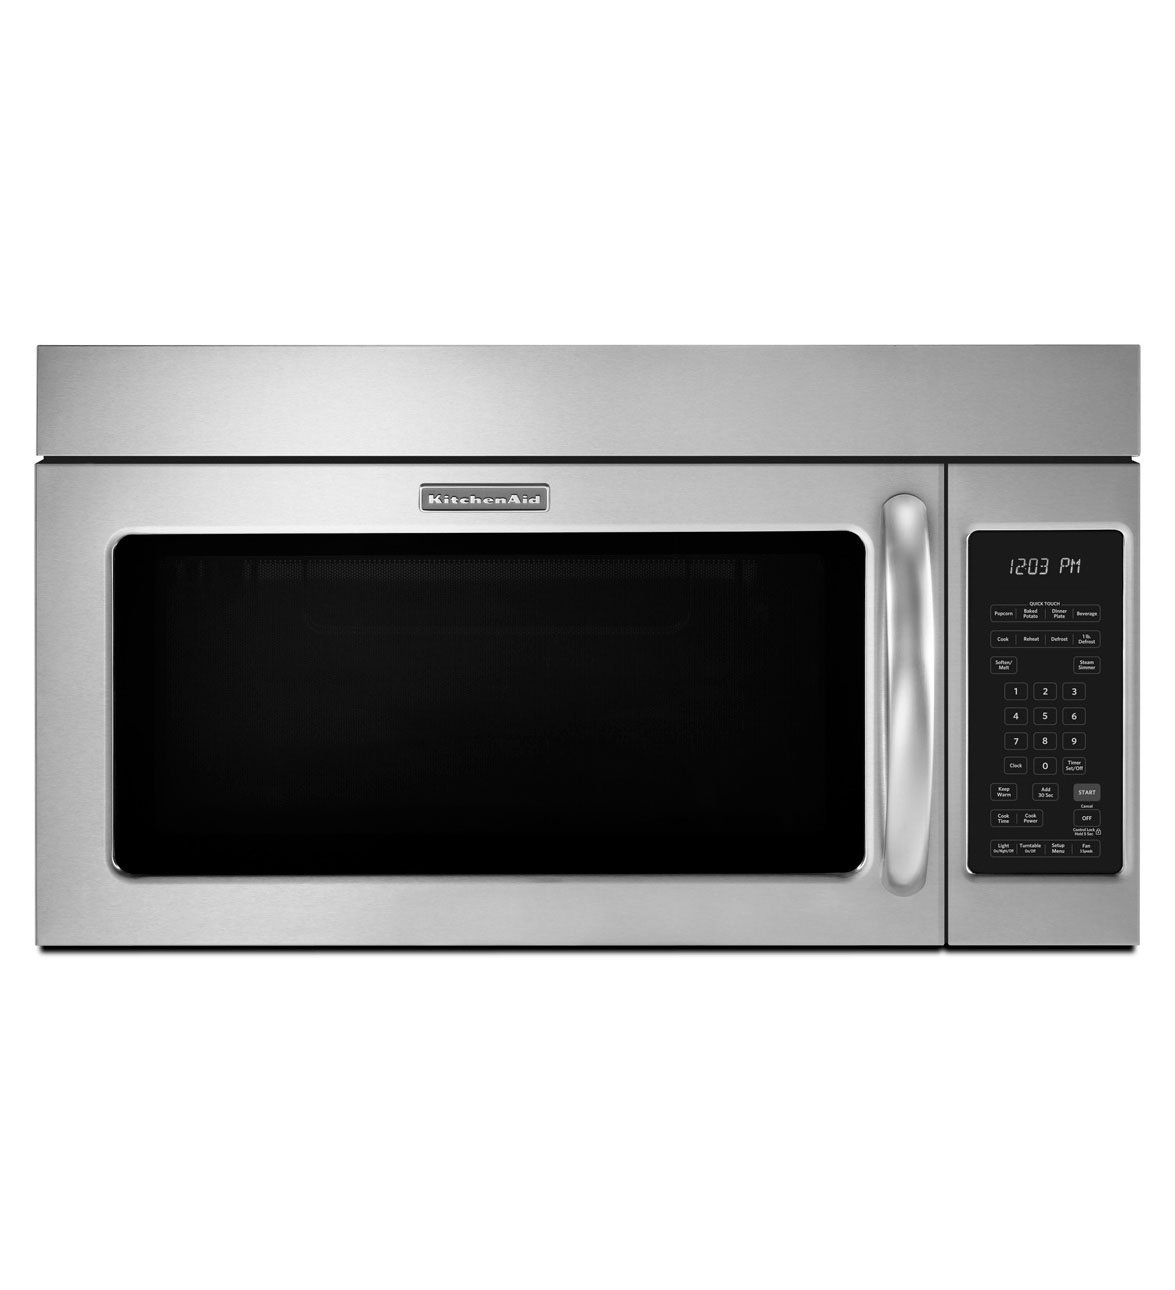 61CMM52QznL._SL1290_ amazon com kitchenaid khms2040bss 30 built in microwave oven 1000  at soozxer.org